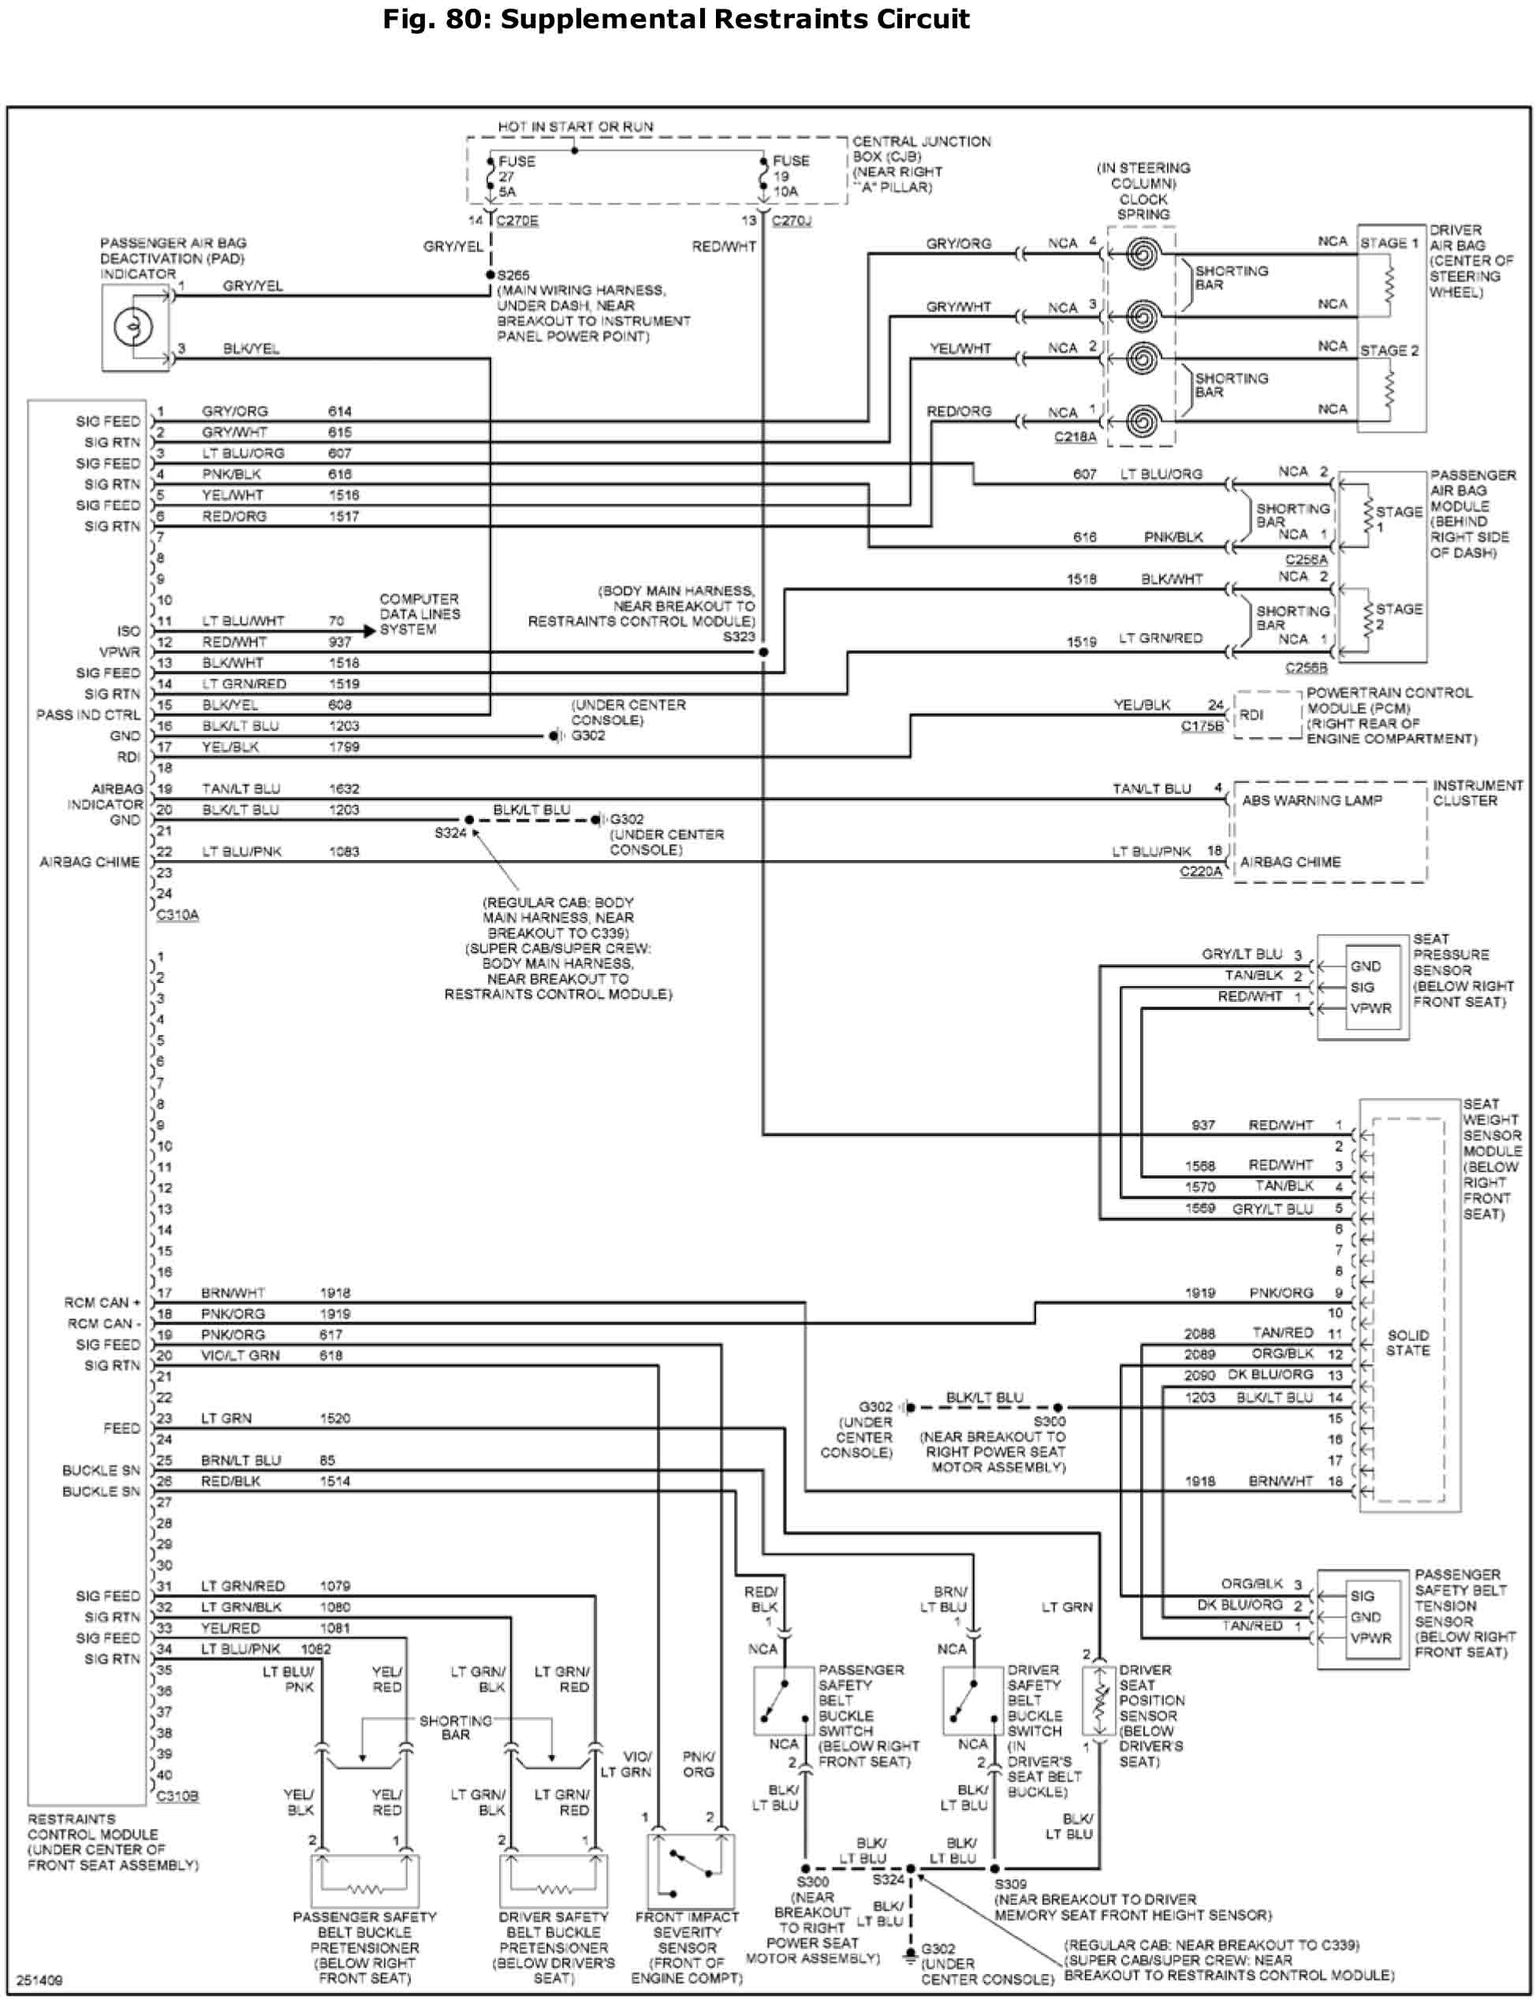 80 07f150_airbag_wiring_diagram_fe541fcfb14ed53b51926a11211ac10867cd5d95 ford abs wiring diagram ford hid headlights wiring diagram 1997 ford ranger fuse box diagram at mifinder.co